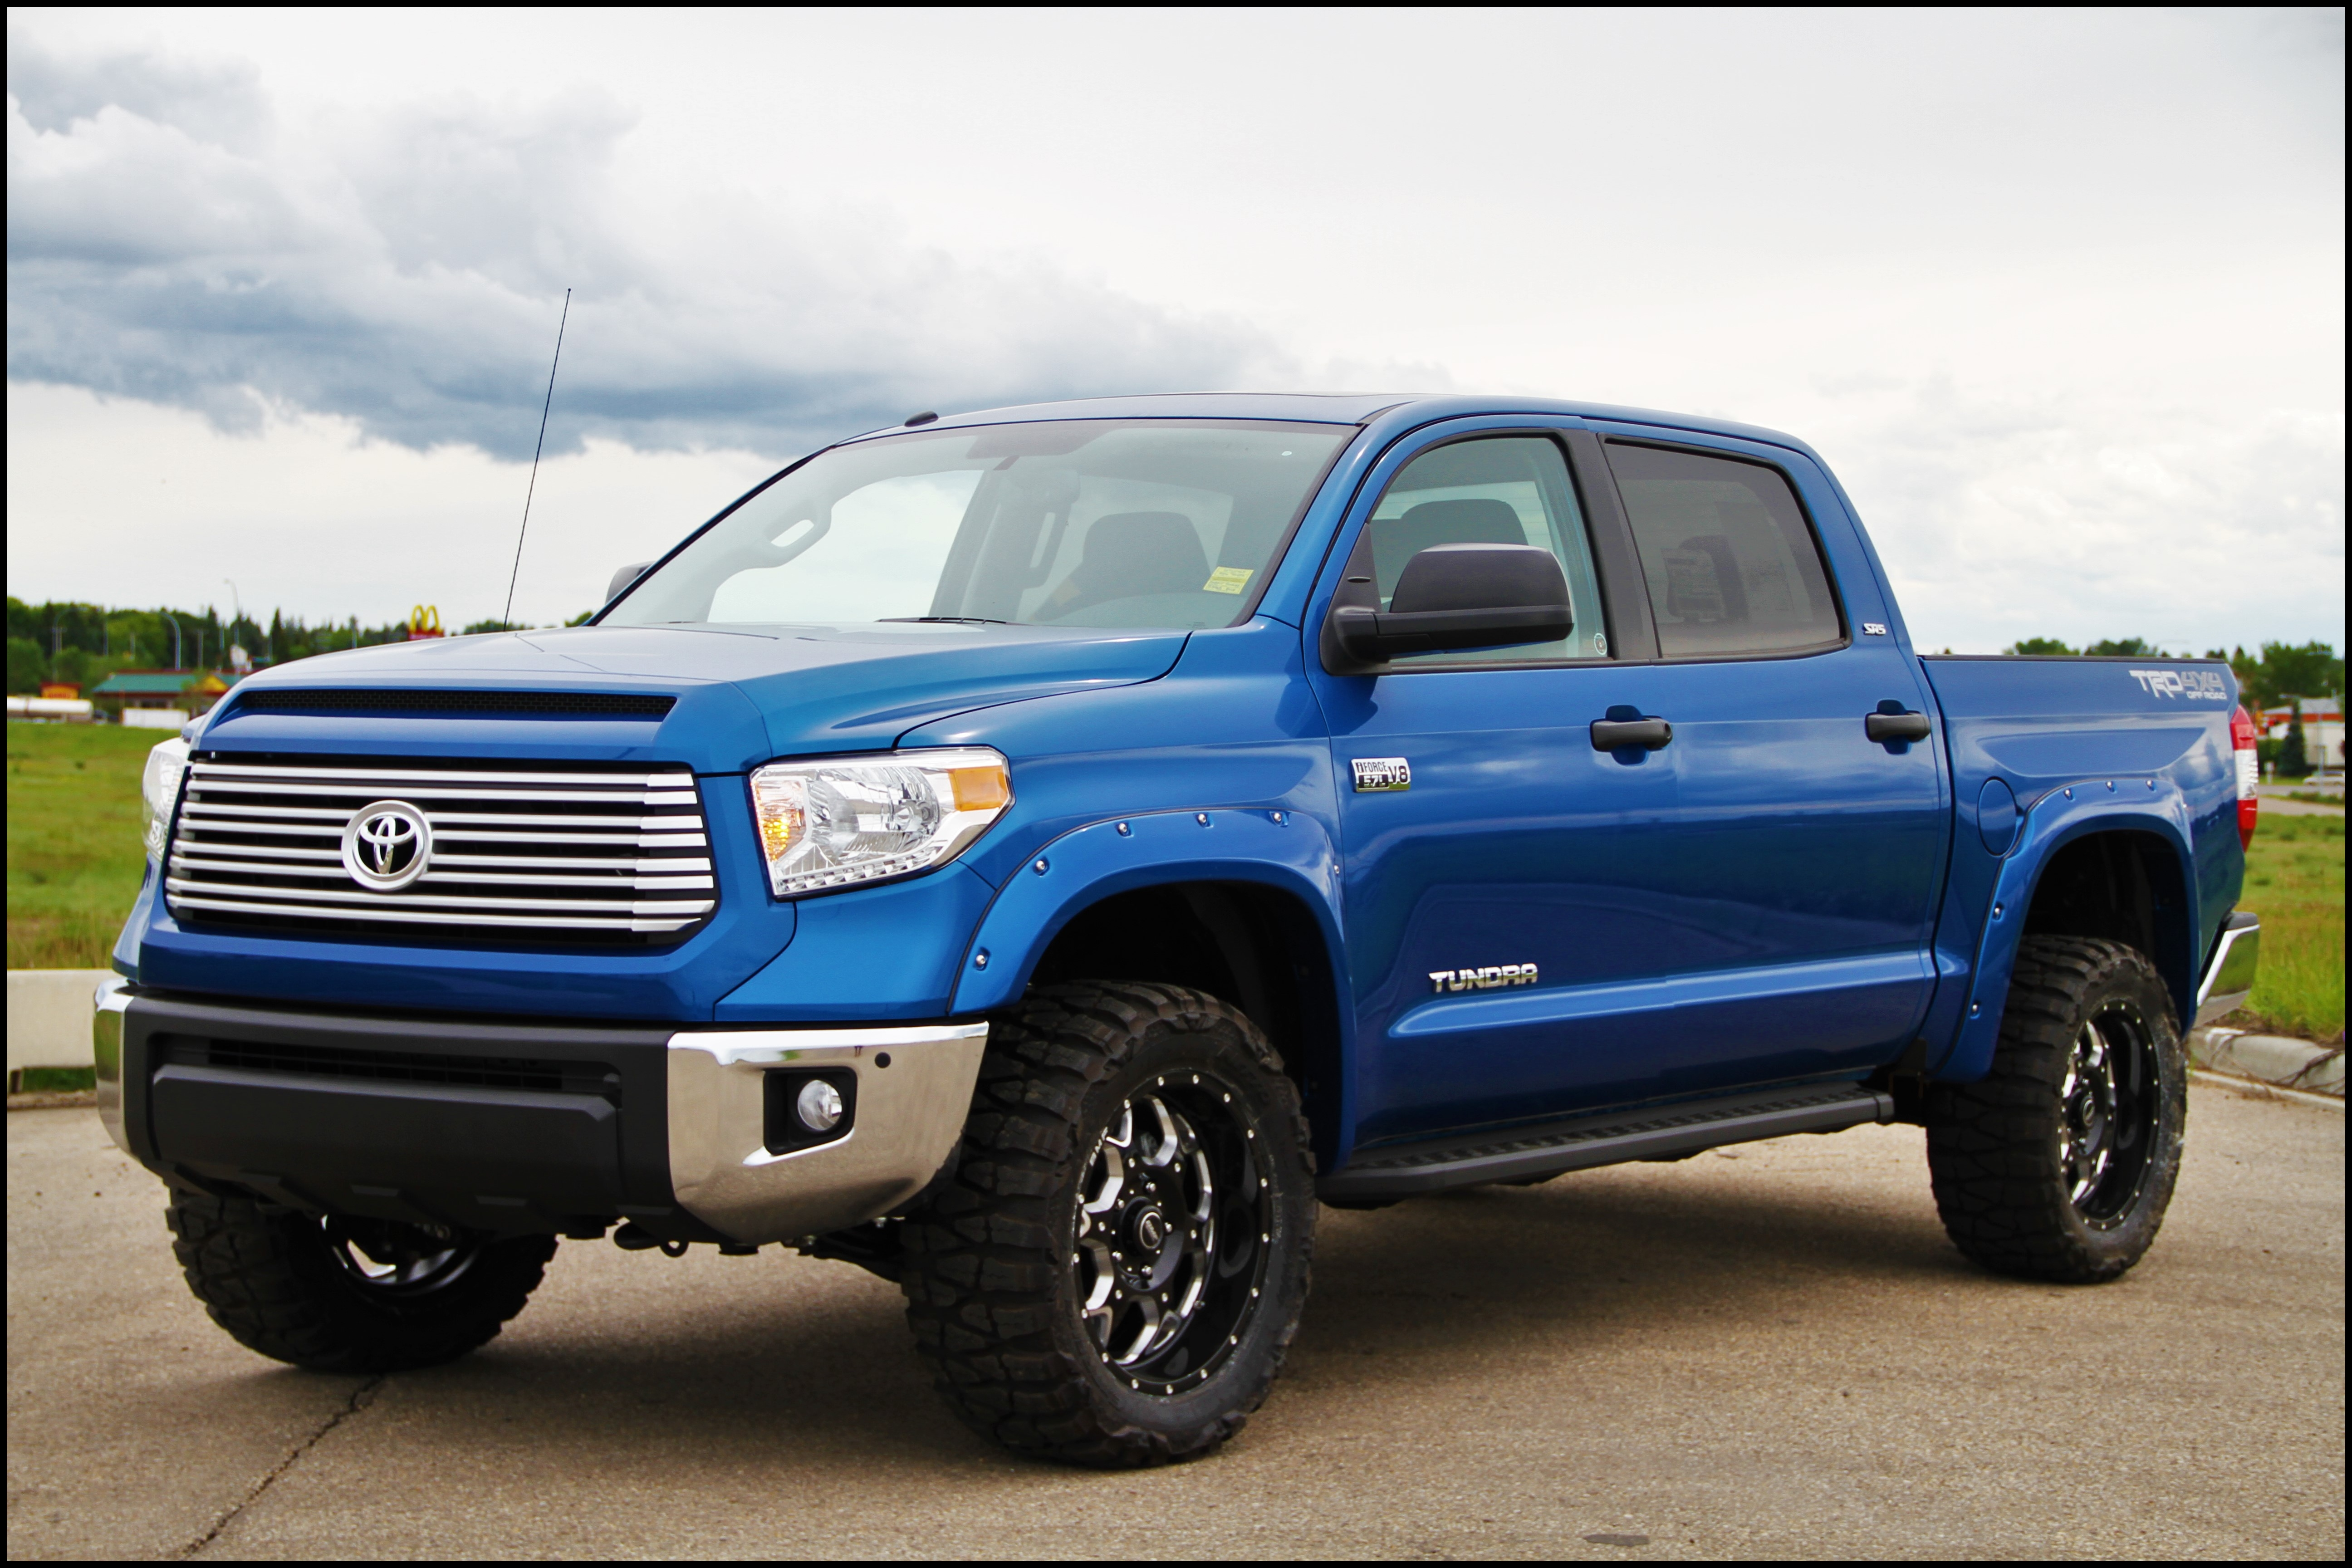 We sat down with our Part s Manager Kevin McEachern to talk about the Sherwood Park Toyota process of developing a custom new truck from conception to